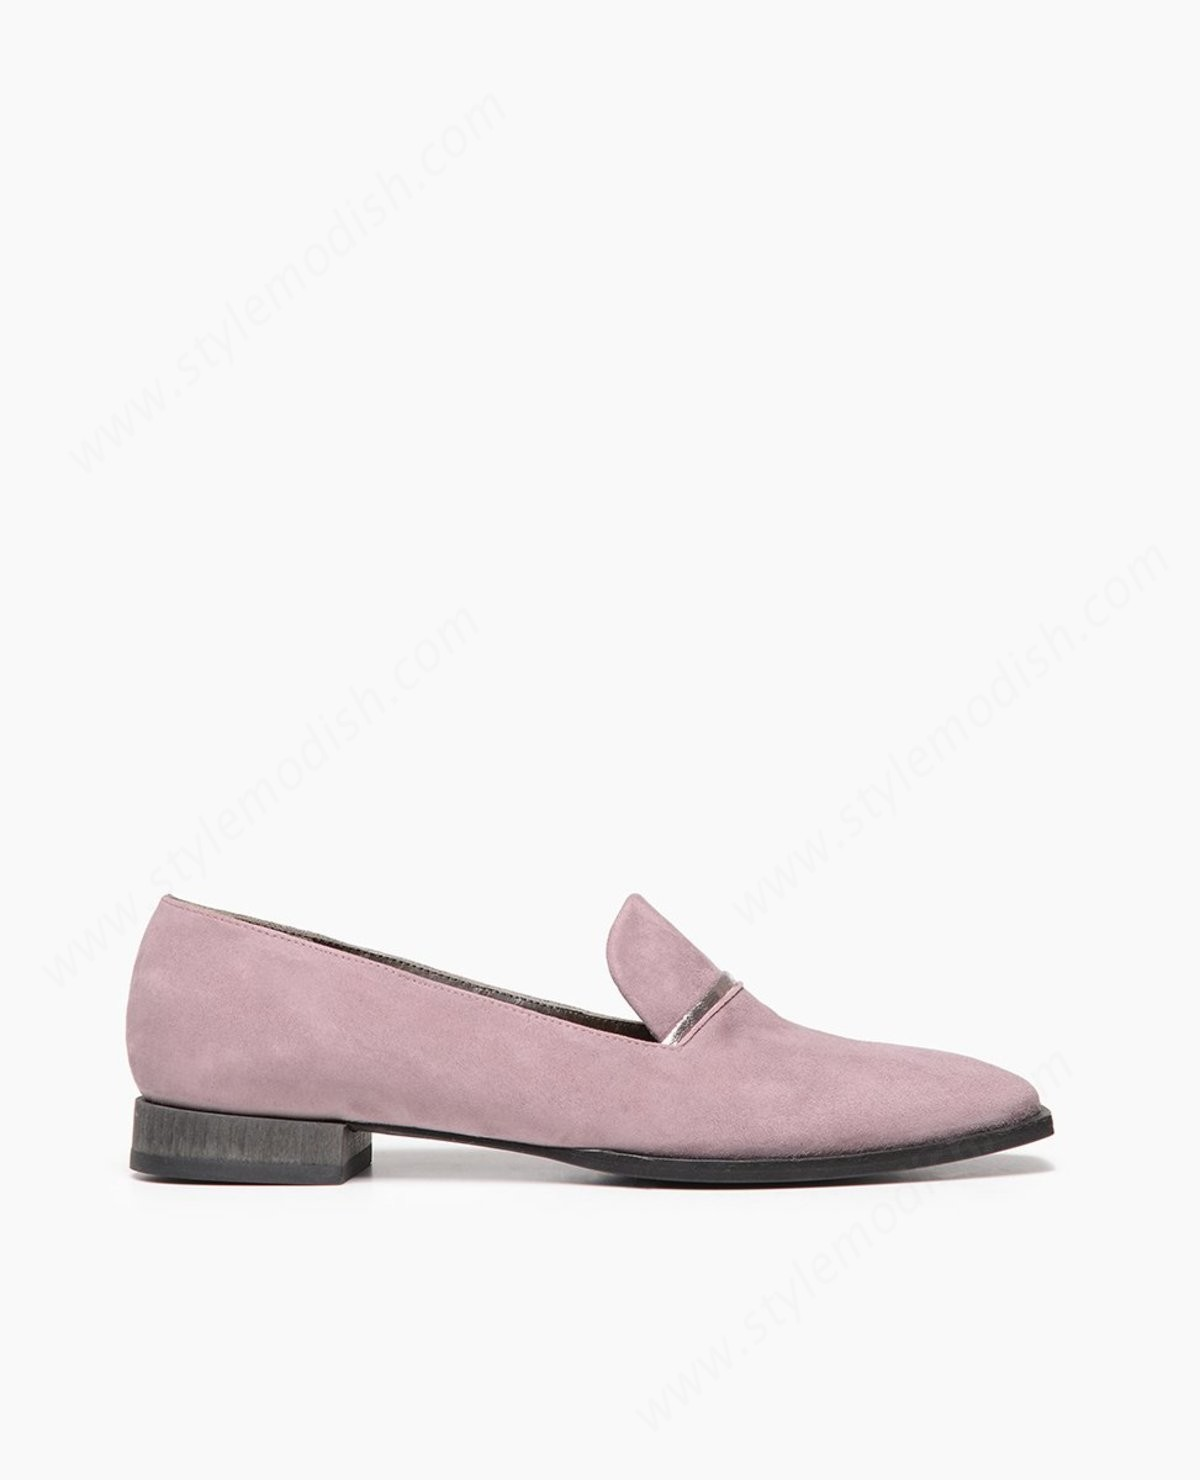 Women's Coclico Sabina Loafer - Viola Trainers - -2